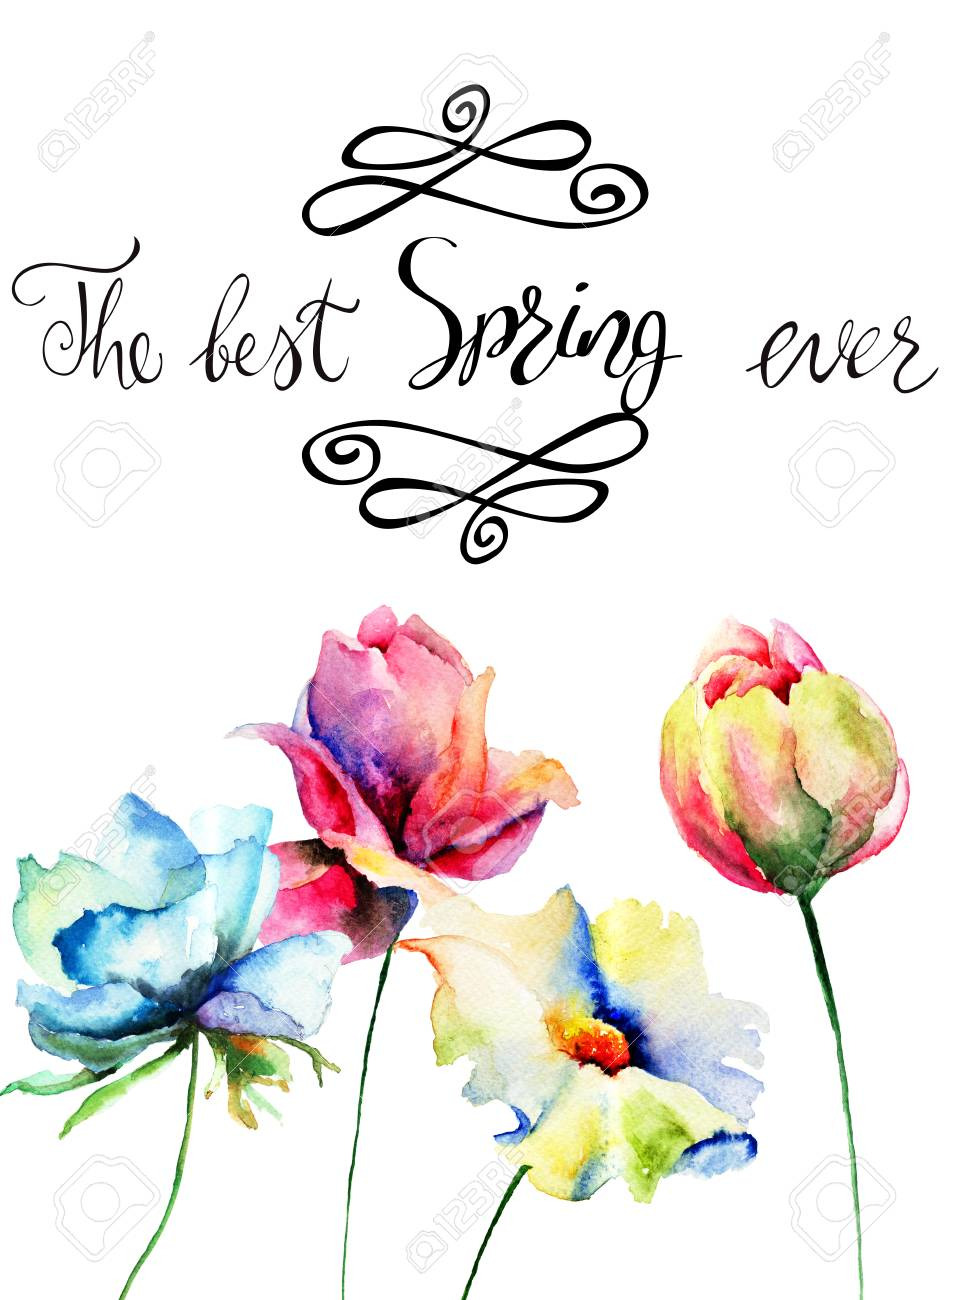 photo title the best spring ever with wild flowers watercolor illustration hand drawn lettering design